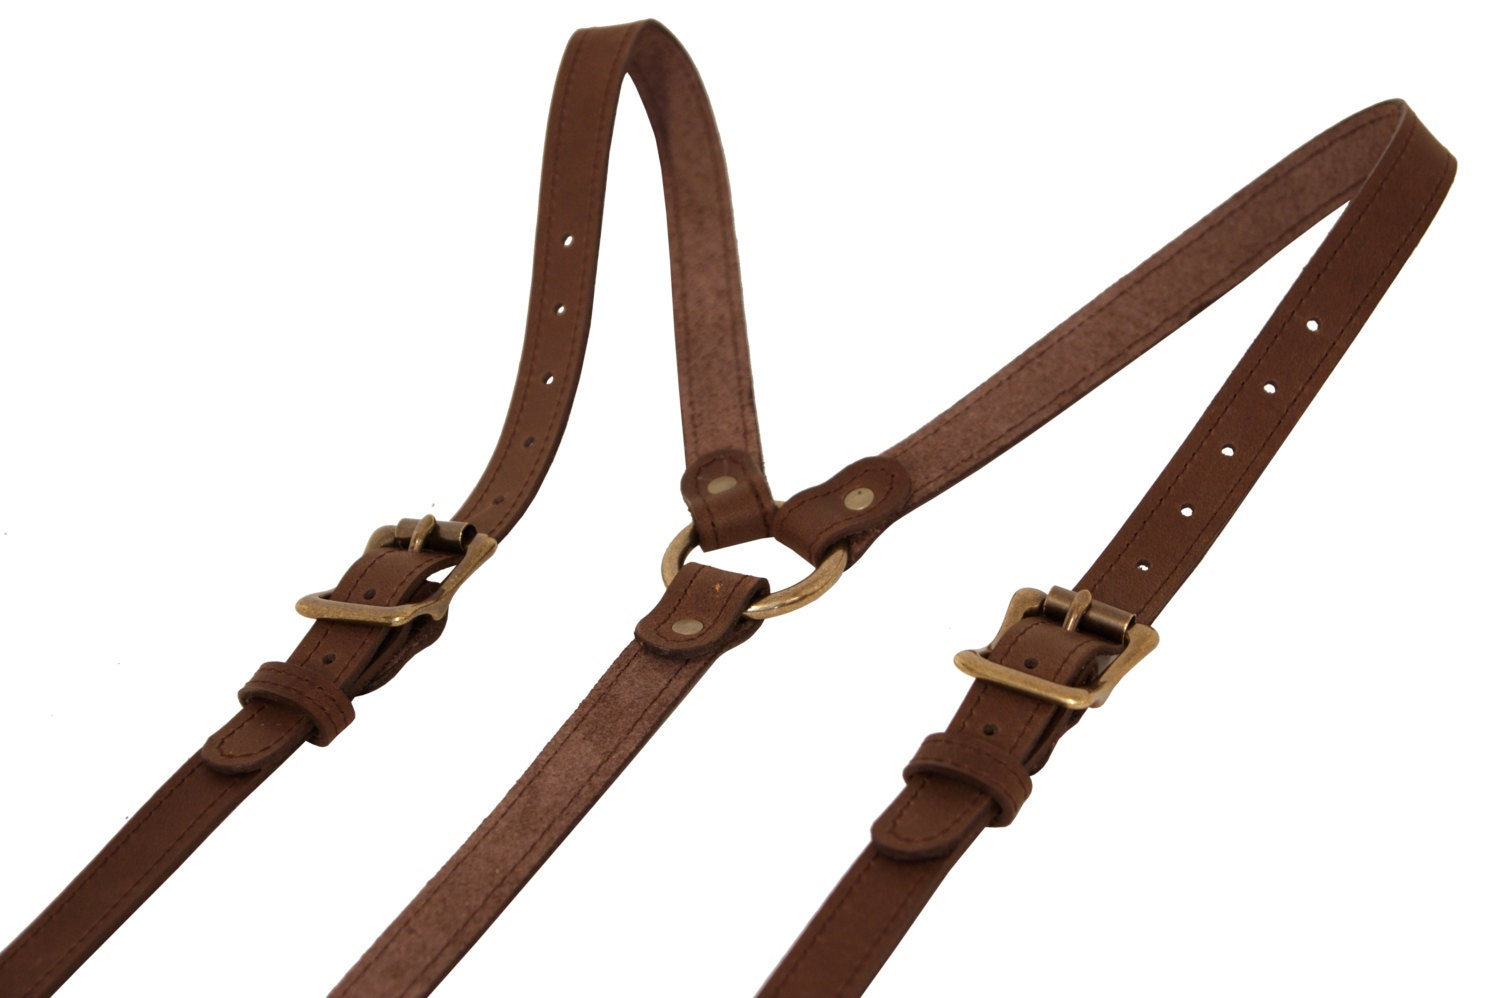 Adherents to 19th century gentlemen's fashion will appreciate our fine Leather Buckle Suspenders in black. Long before the introduction of the belt, the proper way to hold up trousers was with a pair of these over-the-shoulder contraptions that attached via buttons on the waistband.